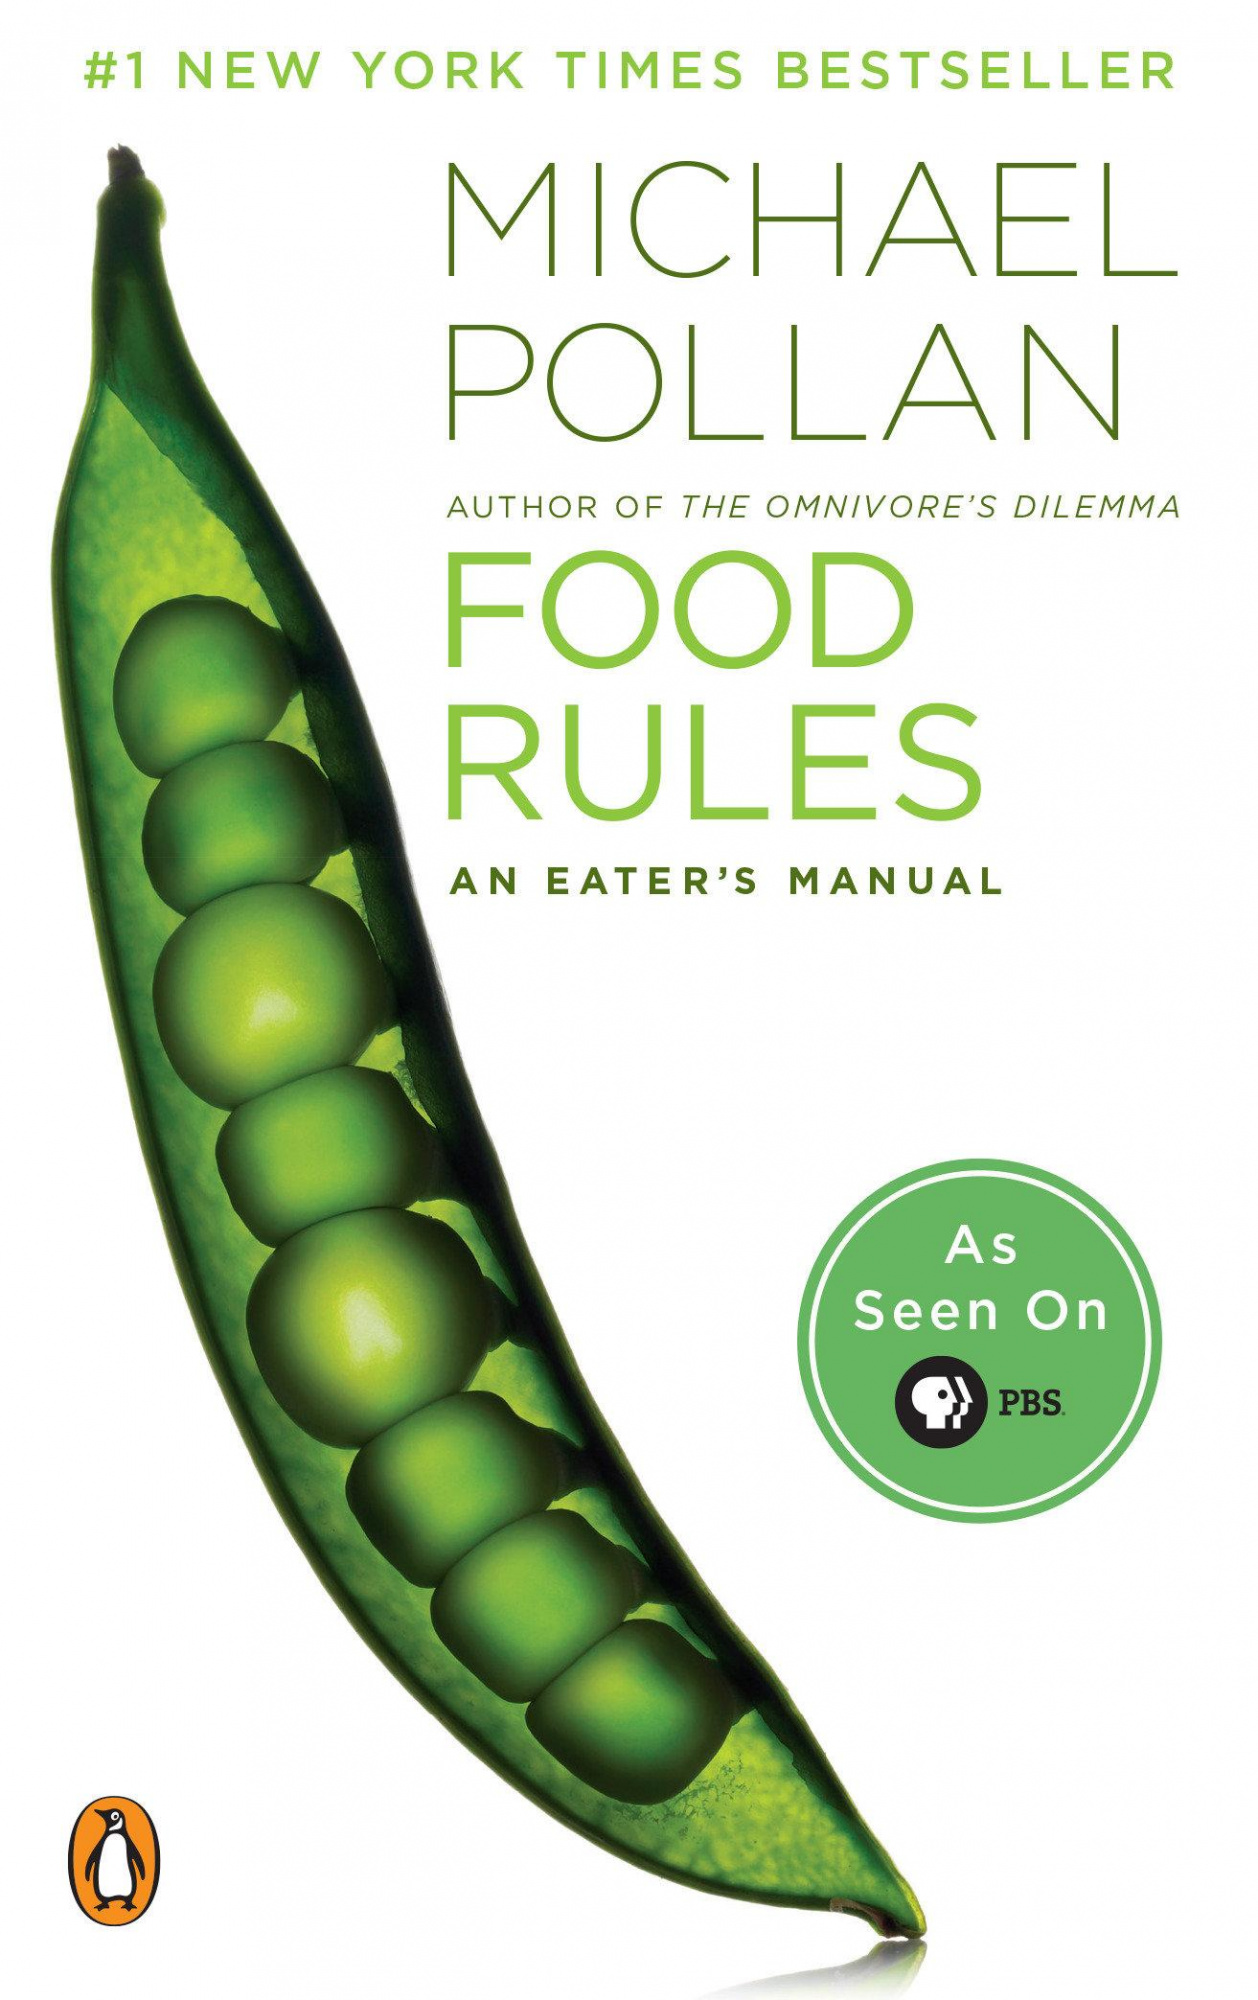 Food Rules by Michael PollanOn Tour, ISBN: 9780143116387